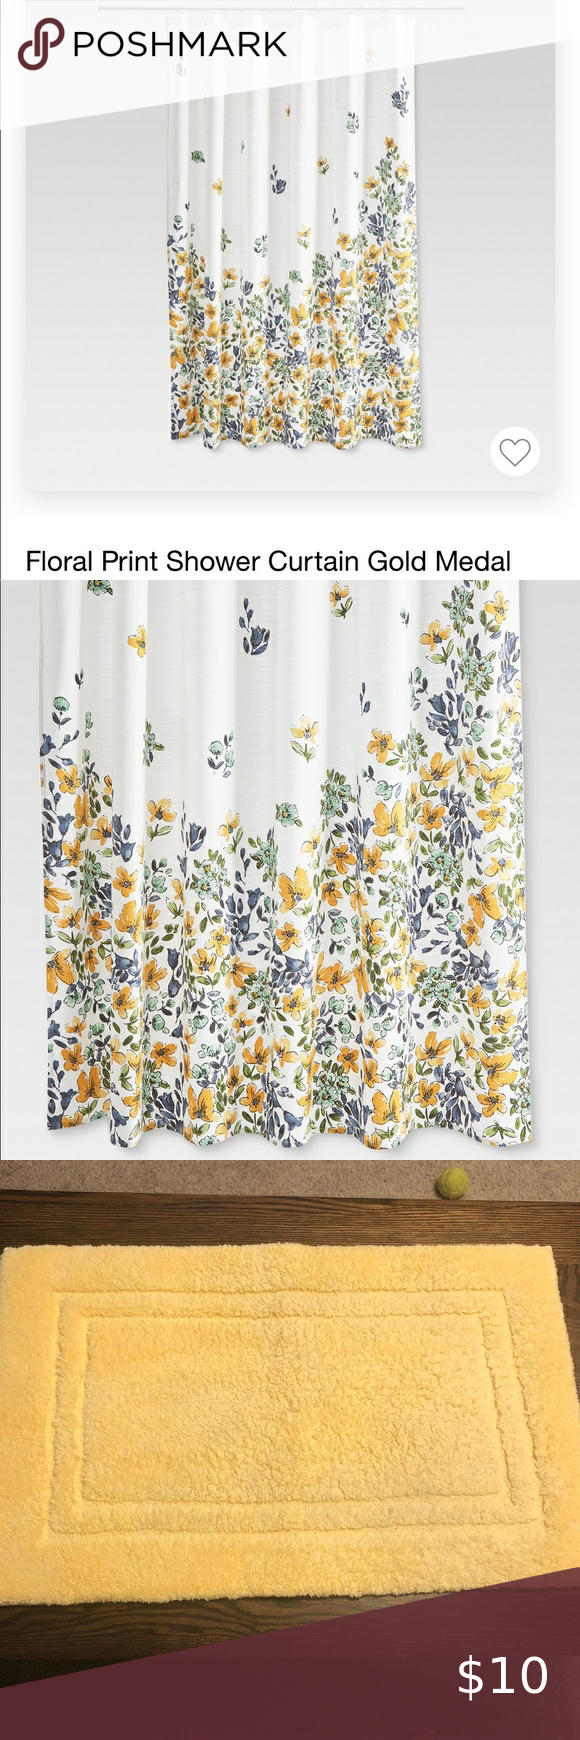 Floral Shower Curtain From Target In 2020 Floral Shower Floral